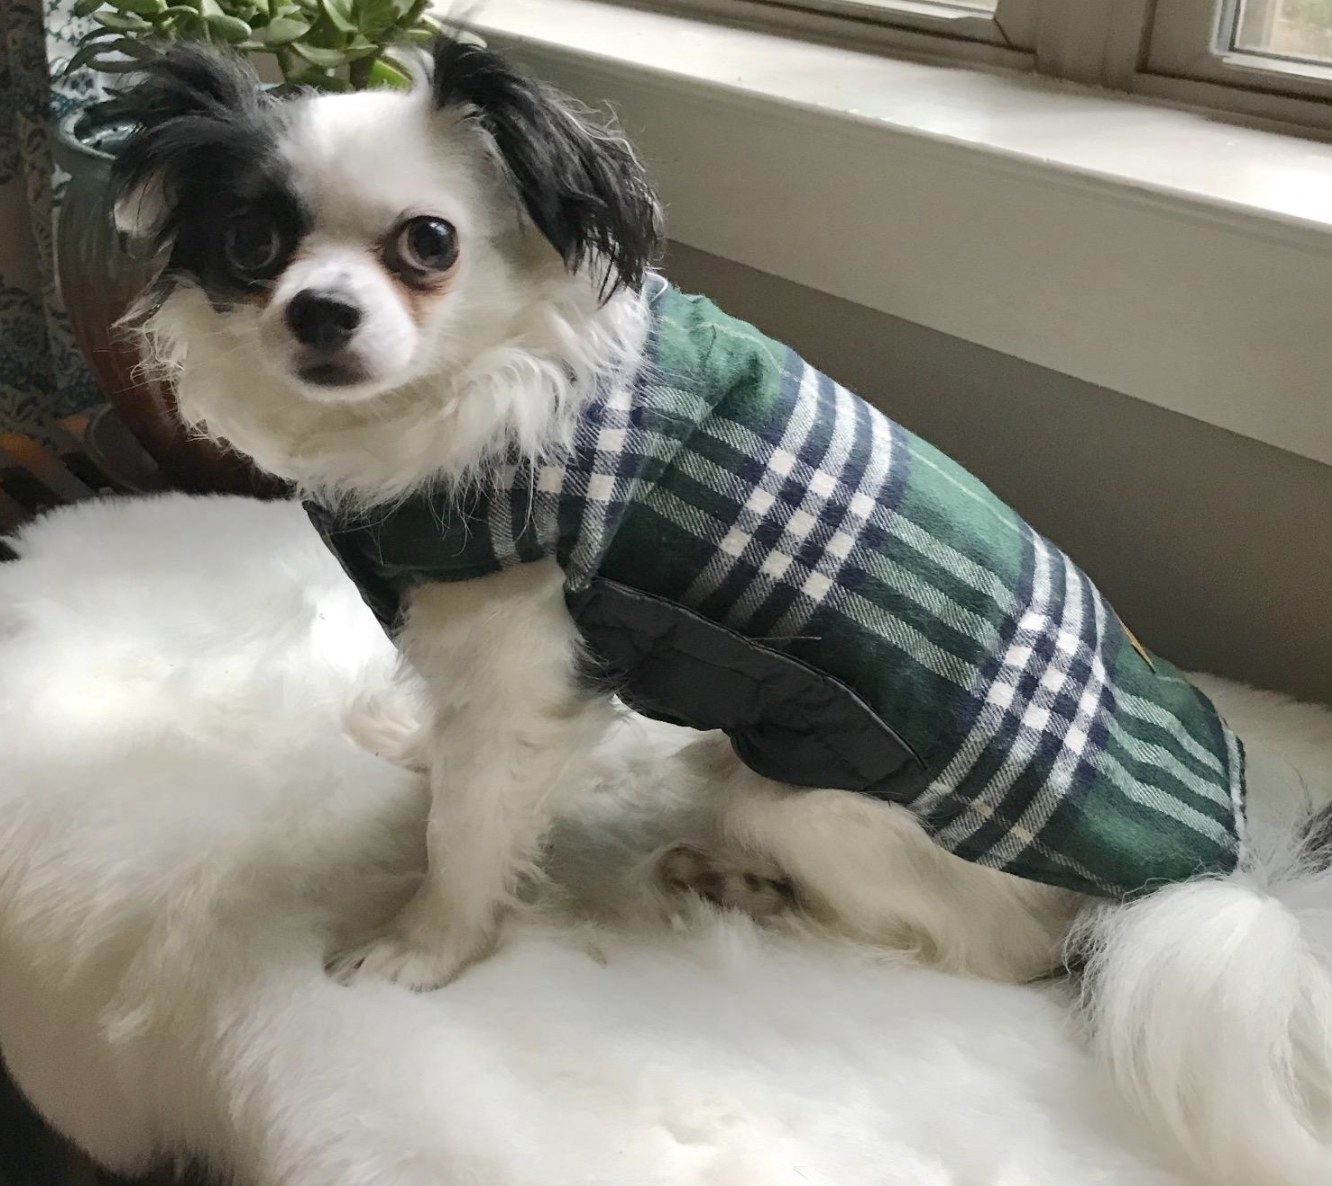 Dog is wearing a green plaid vest